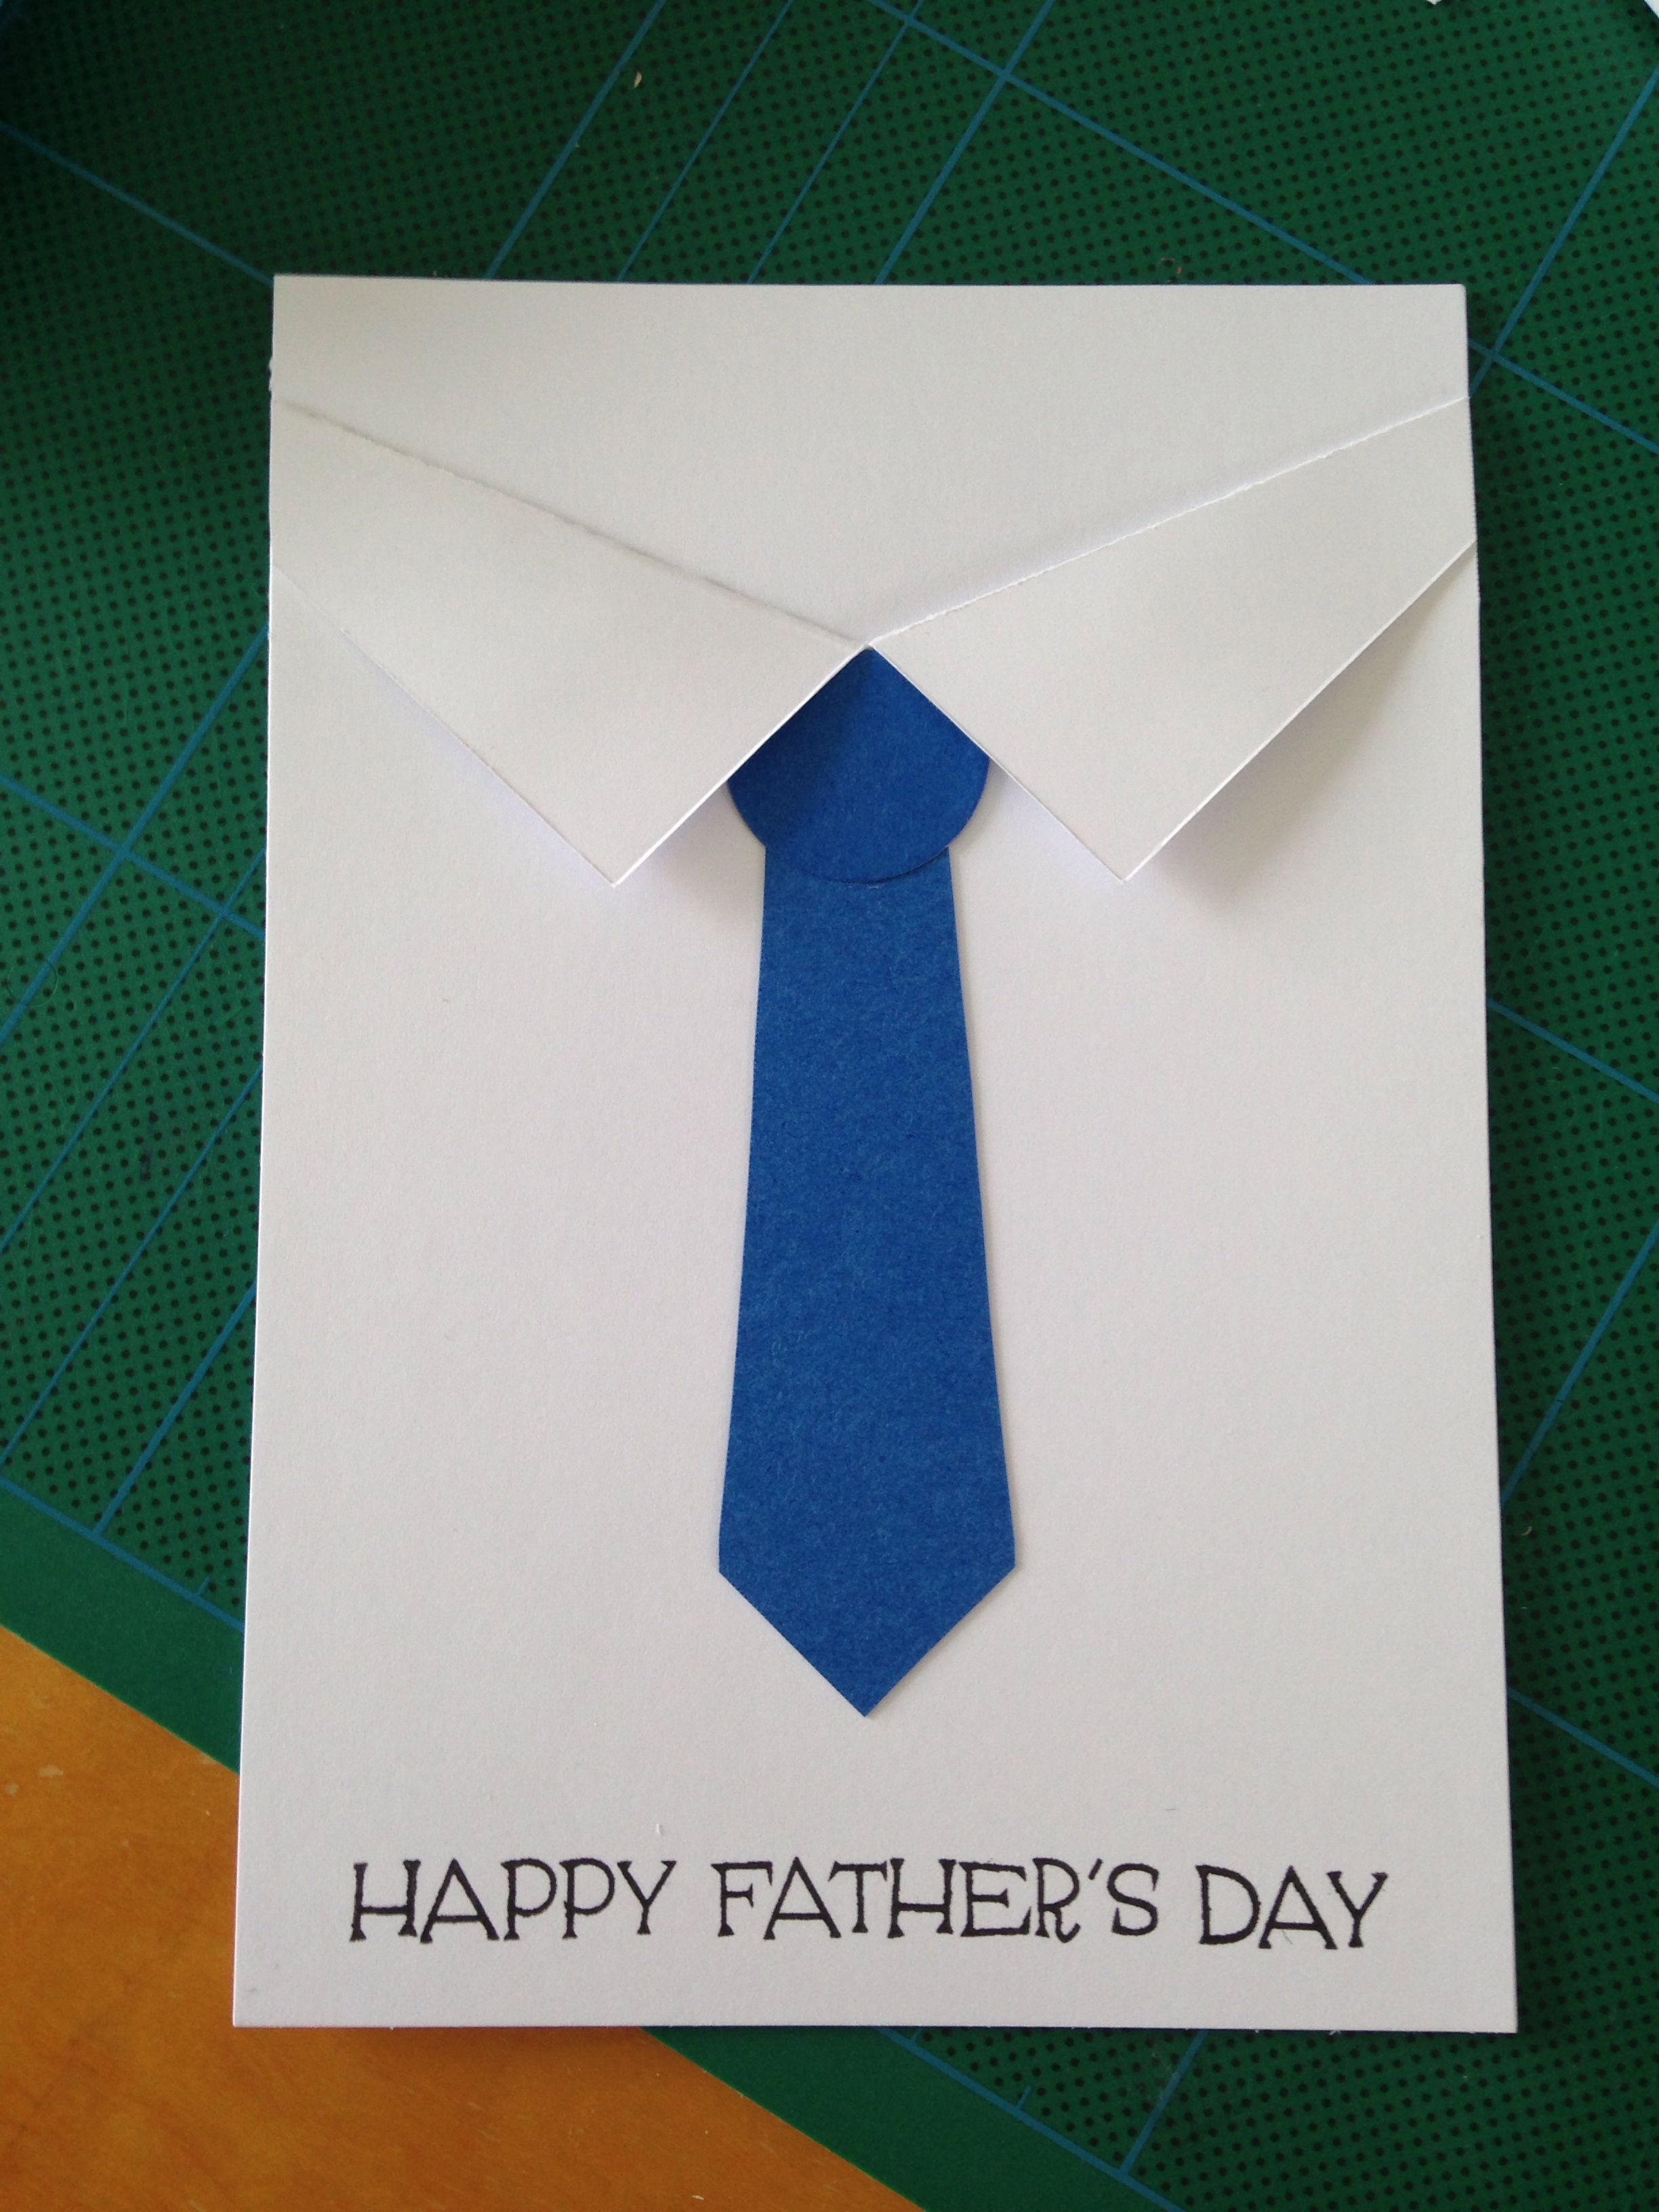 Fatherus day card handmade by me fathers and mothers day